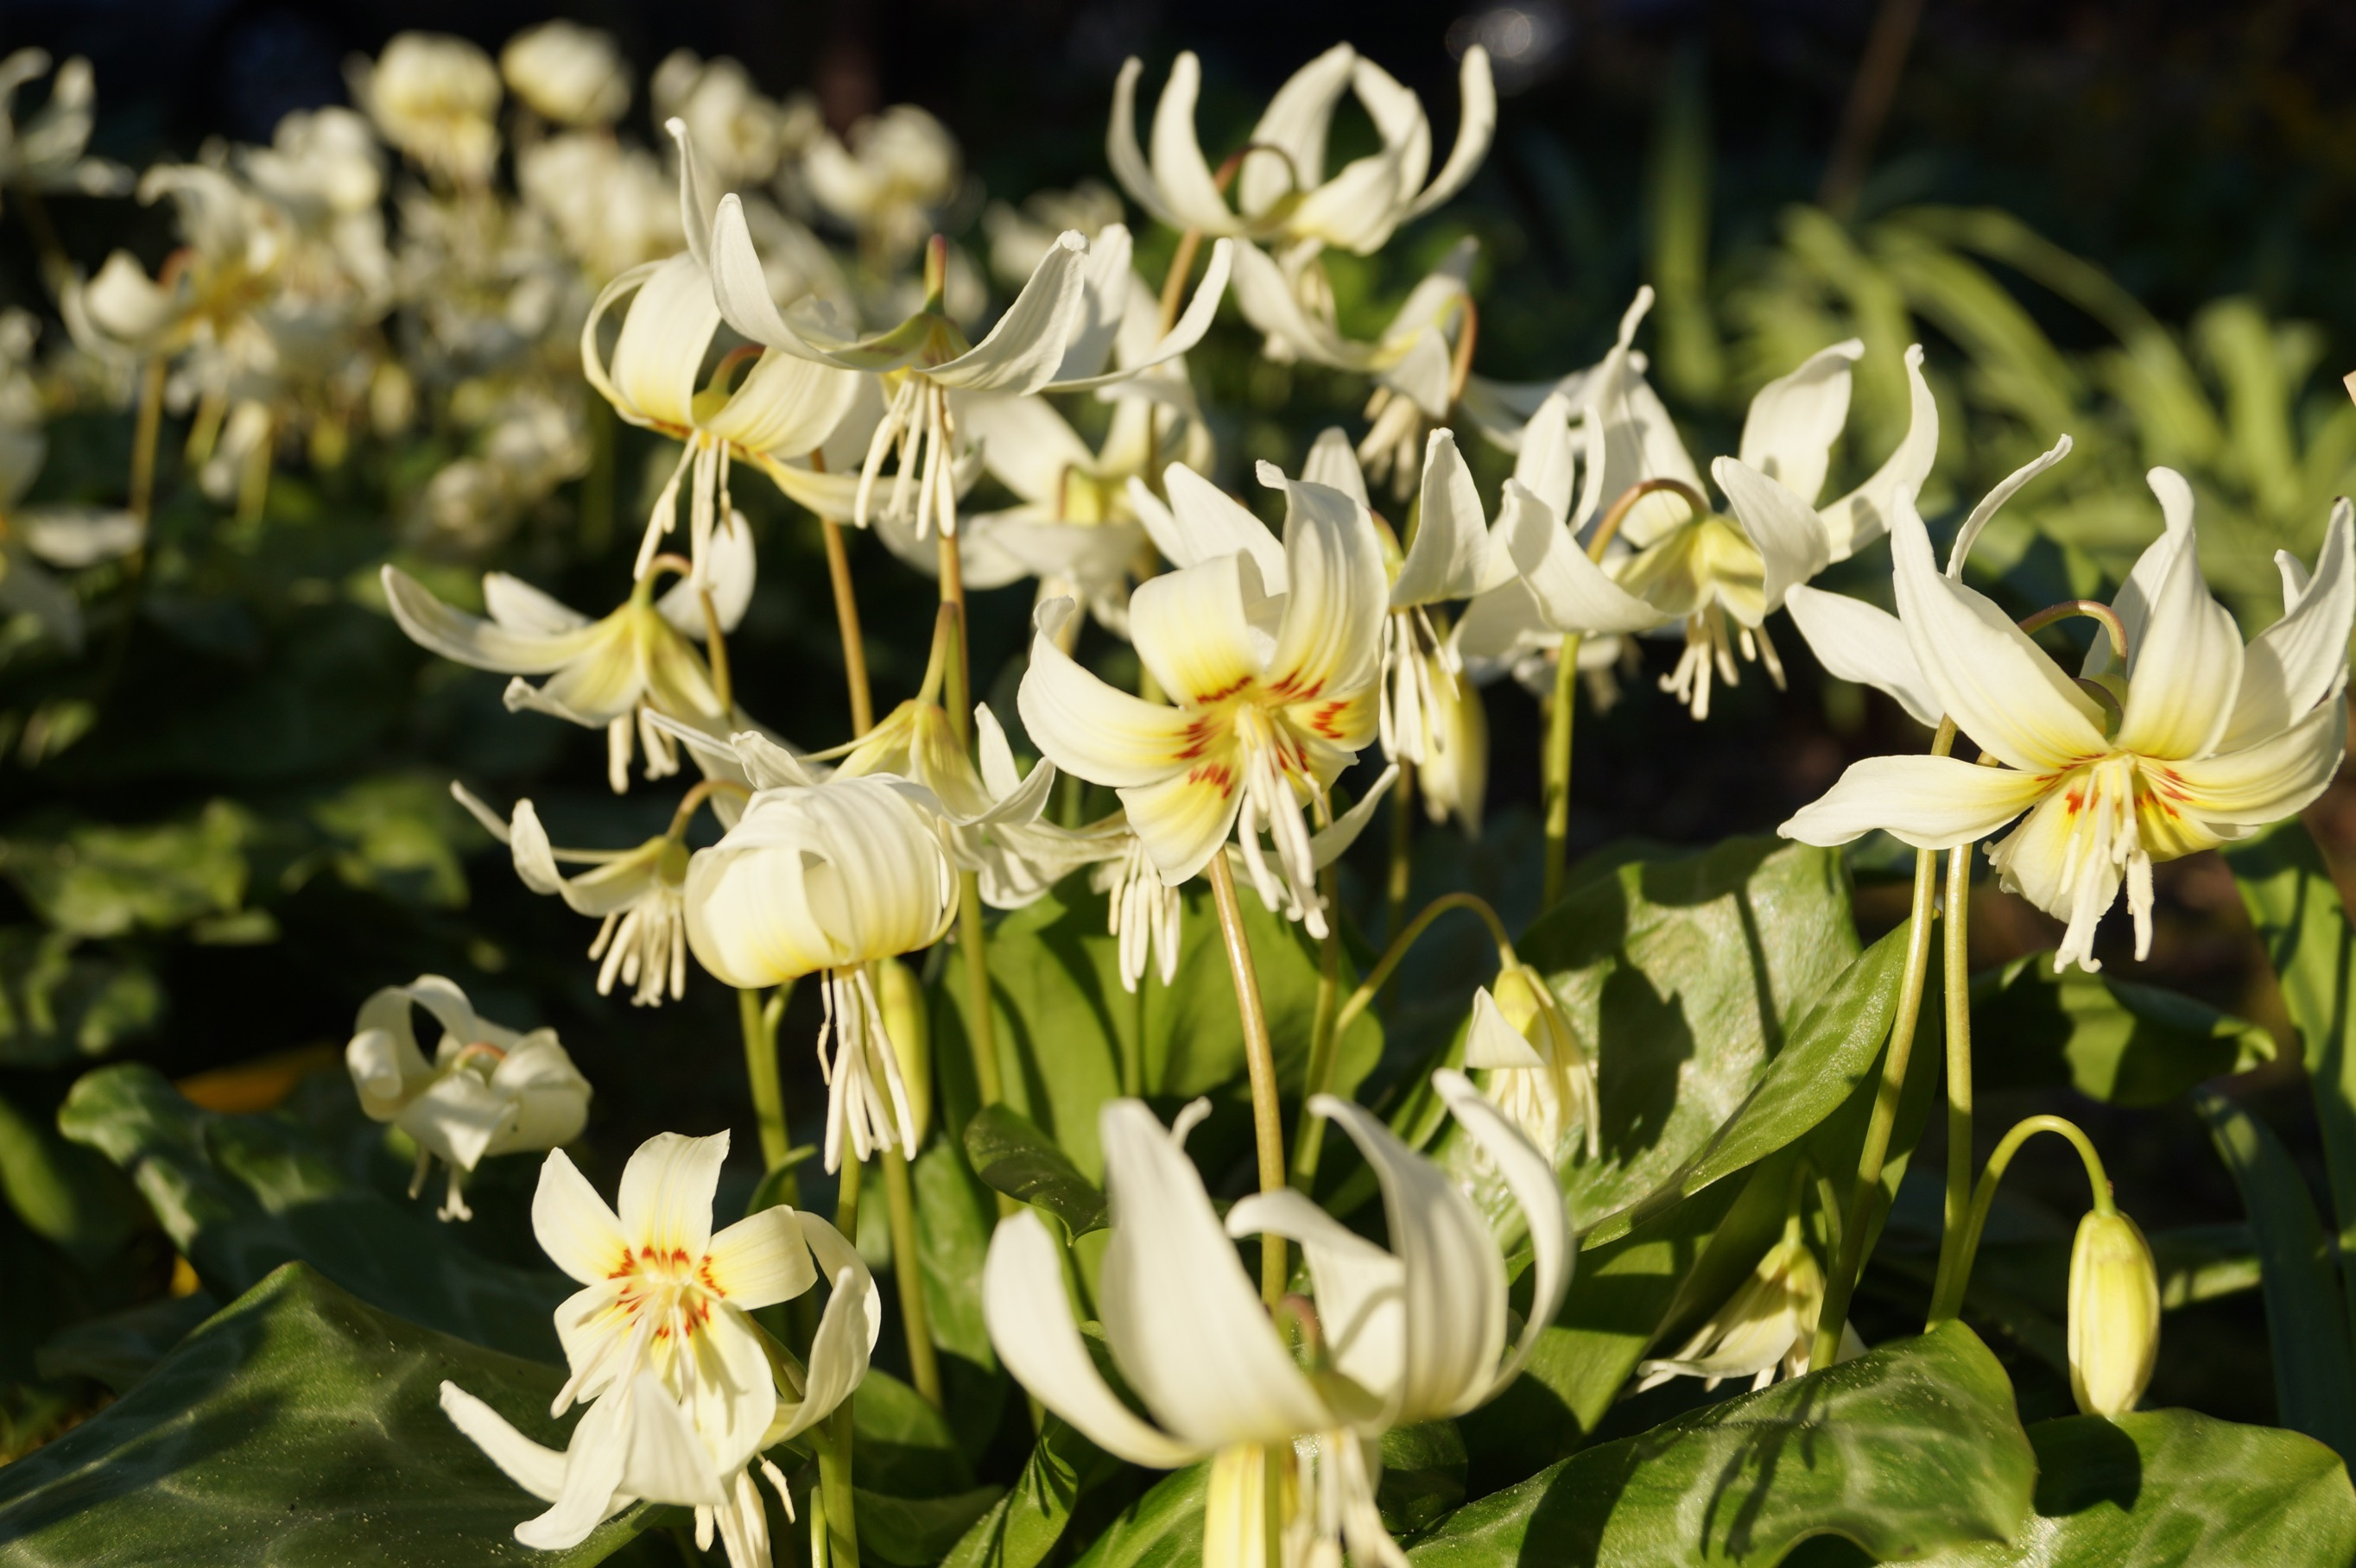 erythronium_white_beauty_morlas_plants